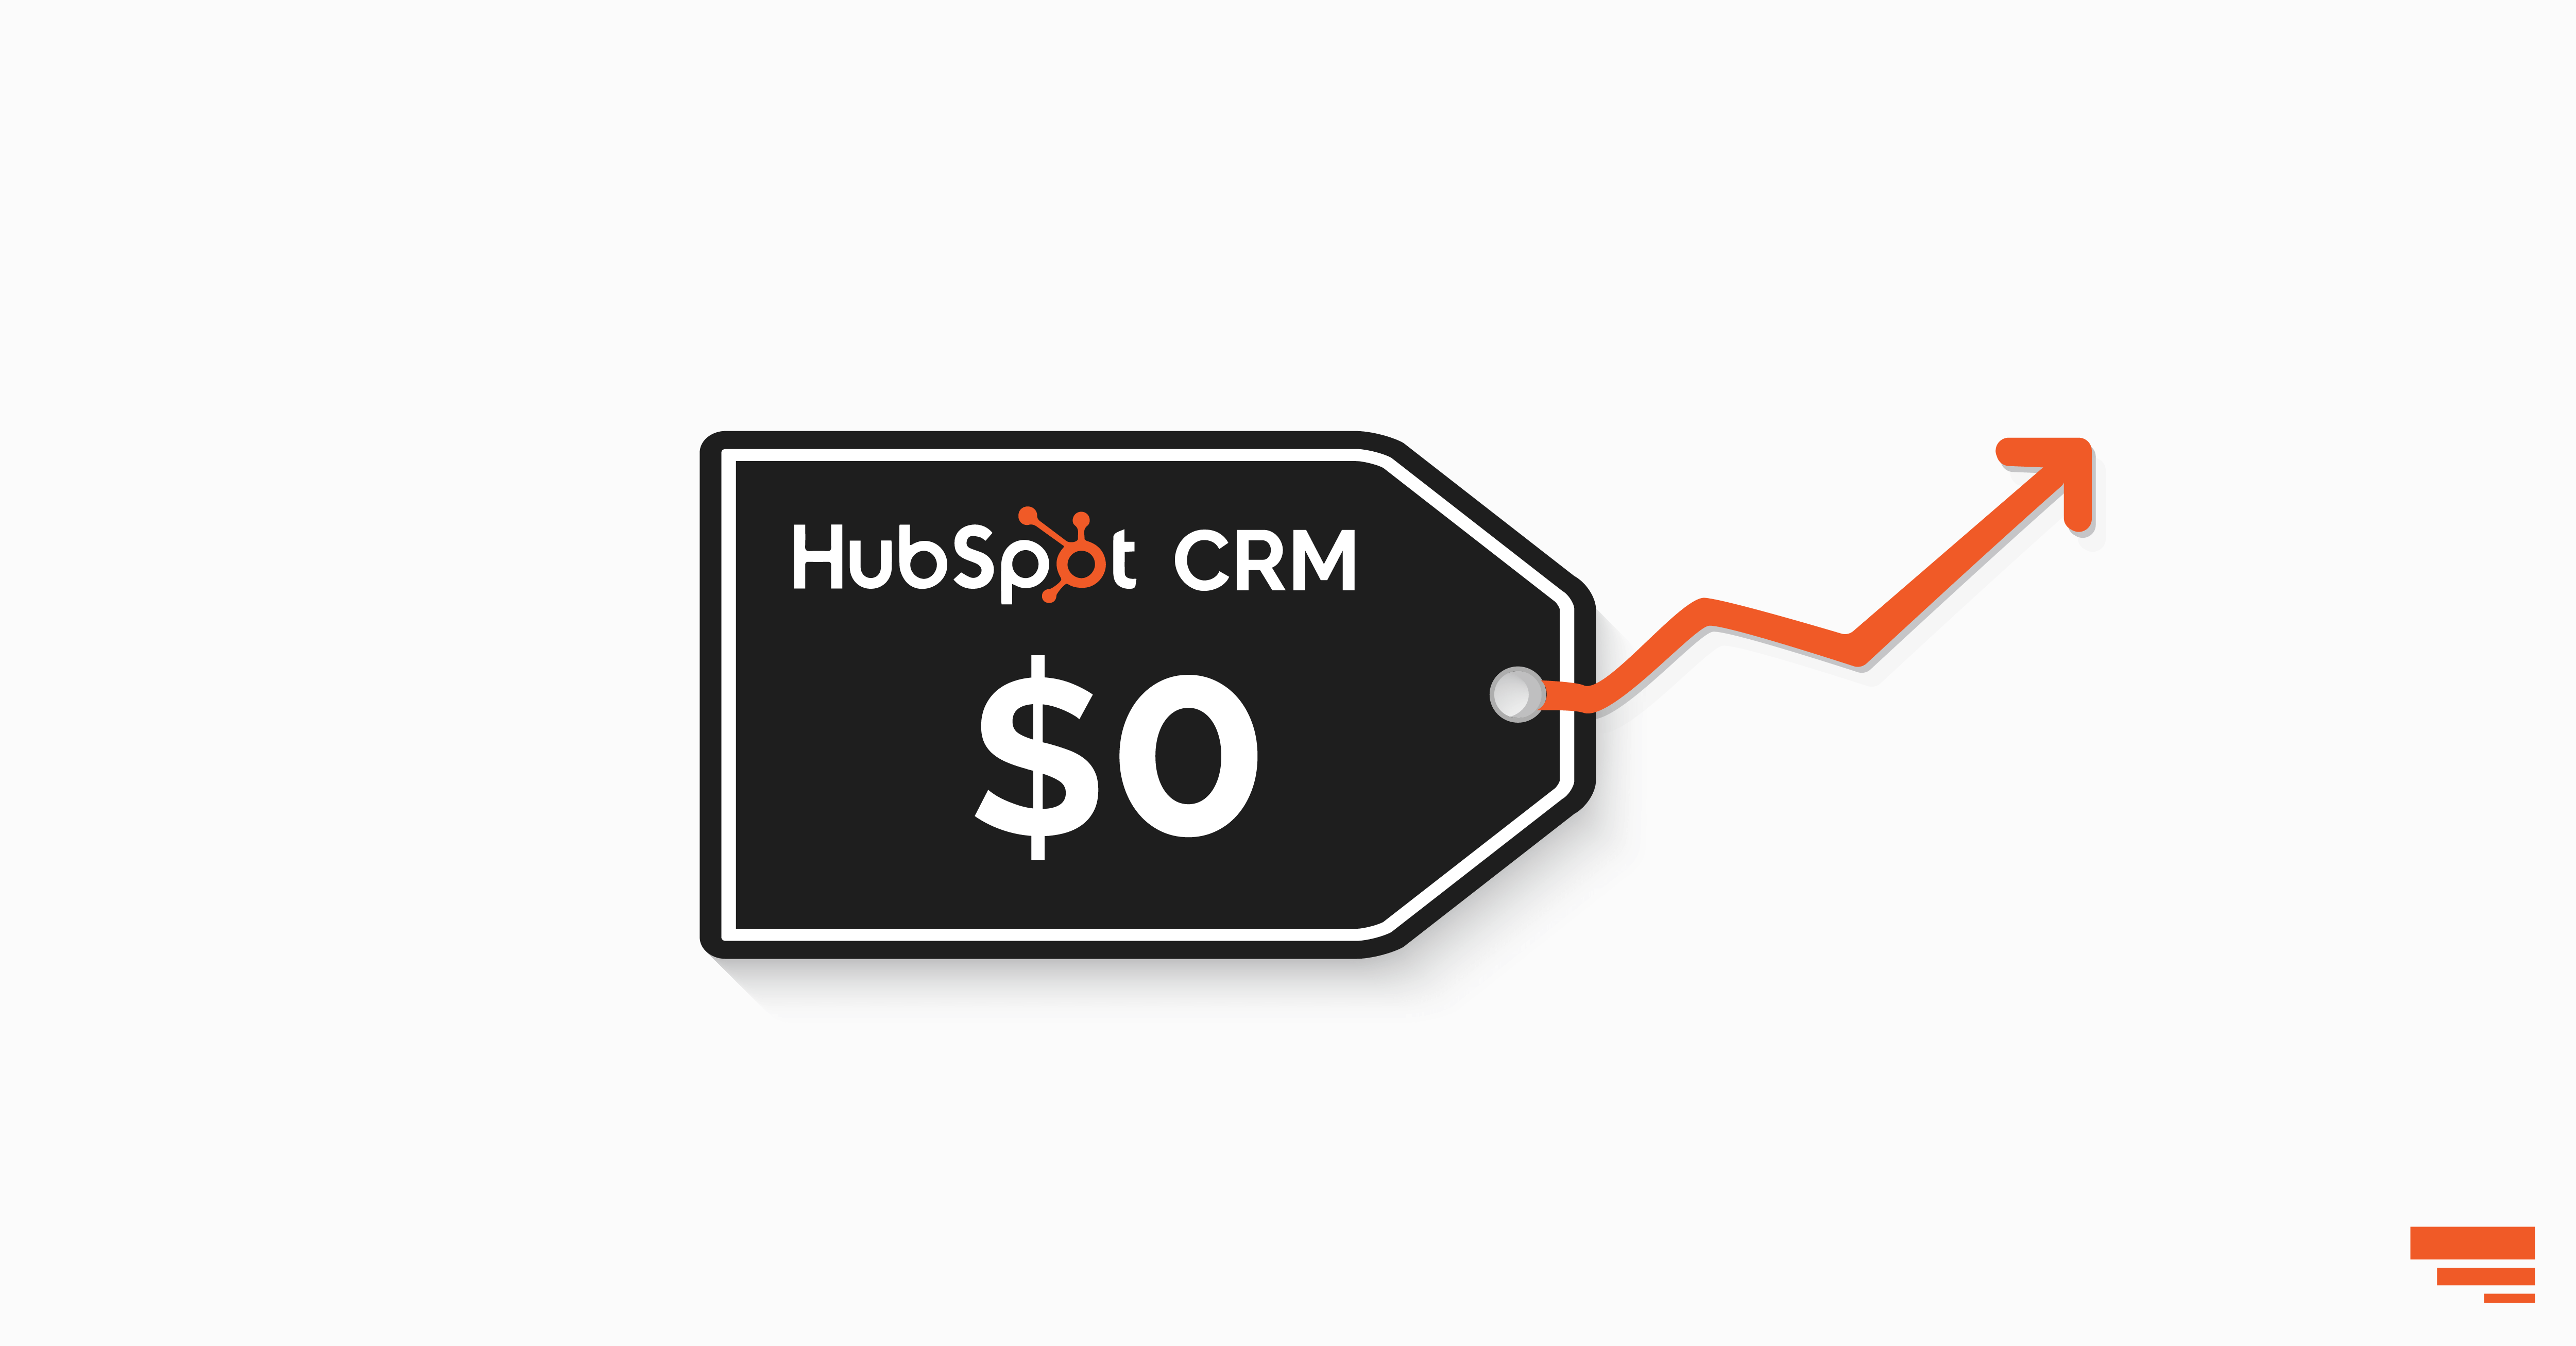 HubSpot CRM Pricing: Is it really free?